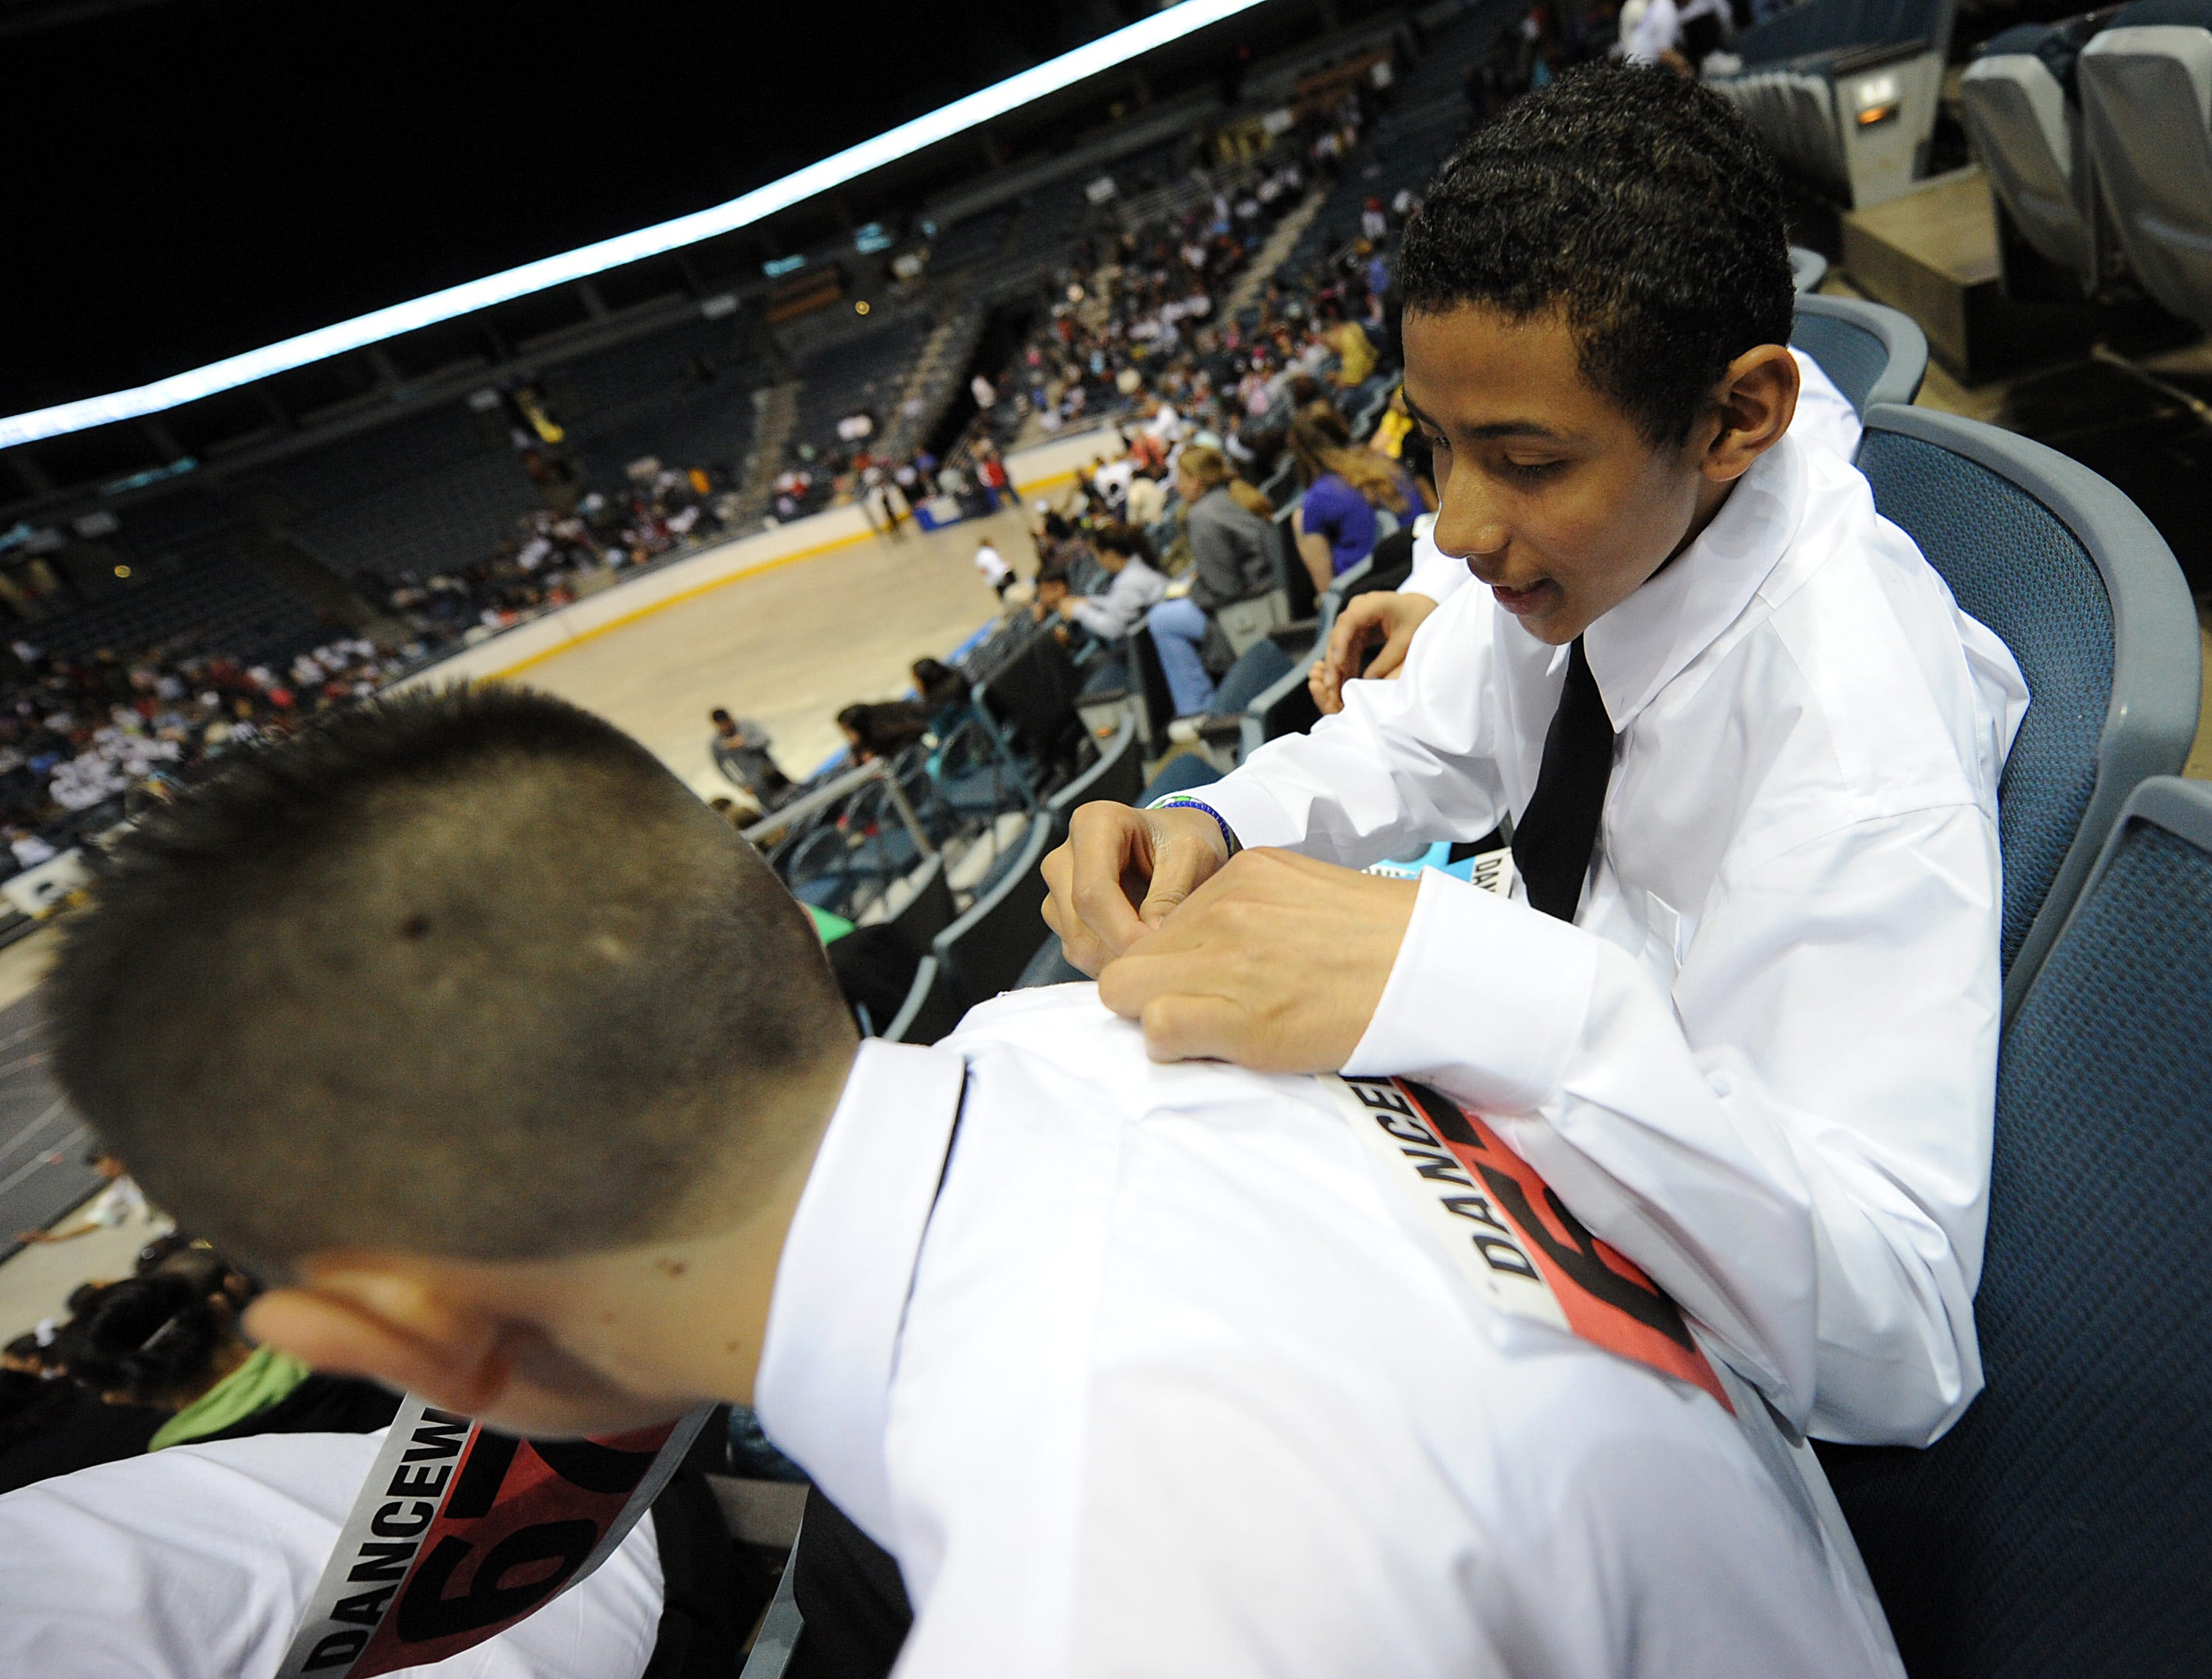 2010: Raymond Rodriguez (right) attaches a number to the back of Emmanuel Martinez shortly before the annual Mad Hot Ballroom and Tap Competition at the Bradley Center. Both Rodriguez and Martinez are sixth graders at Vieau School. More than 2,000 local students from 42 schools took part in a variety of dances and dance competitions.